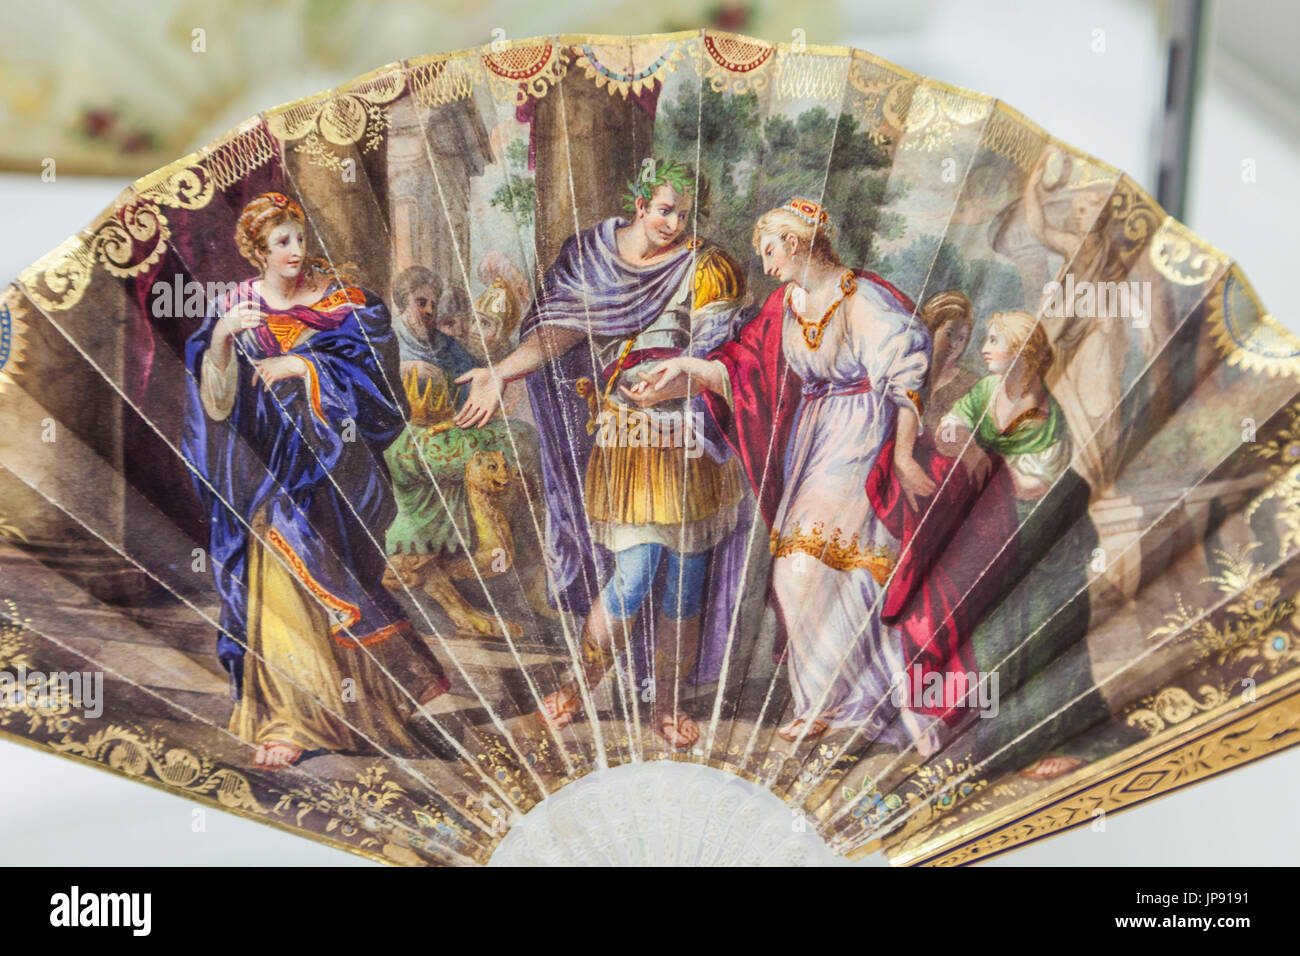 England, London, Greenwich, The Fan Museum, Display of Historical French Fan dated 1810 depicting Caesar Restoring Cleopatra to her Throne - Stock Image